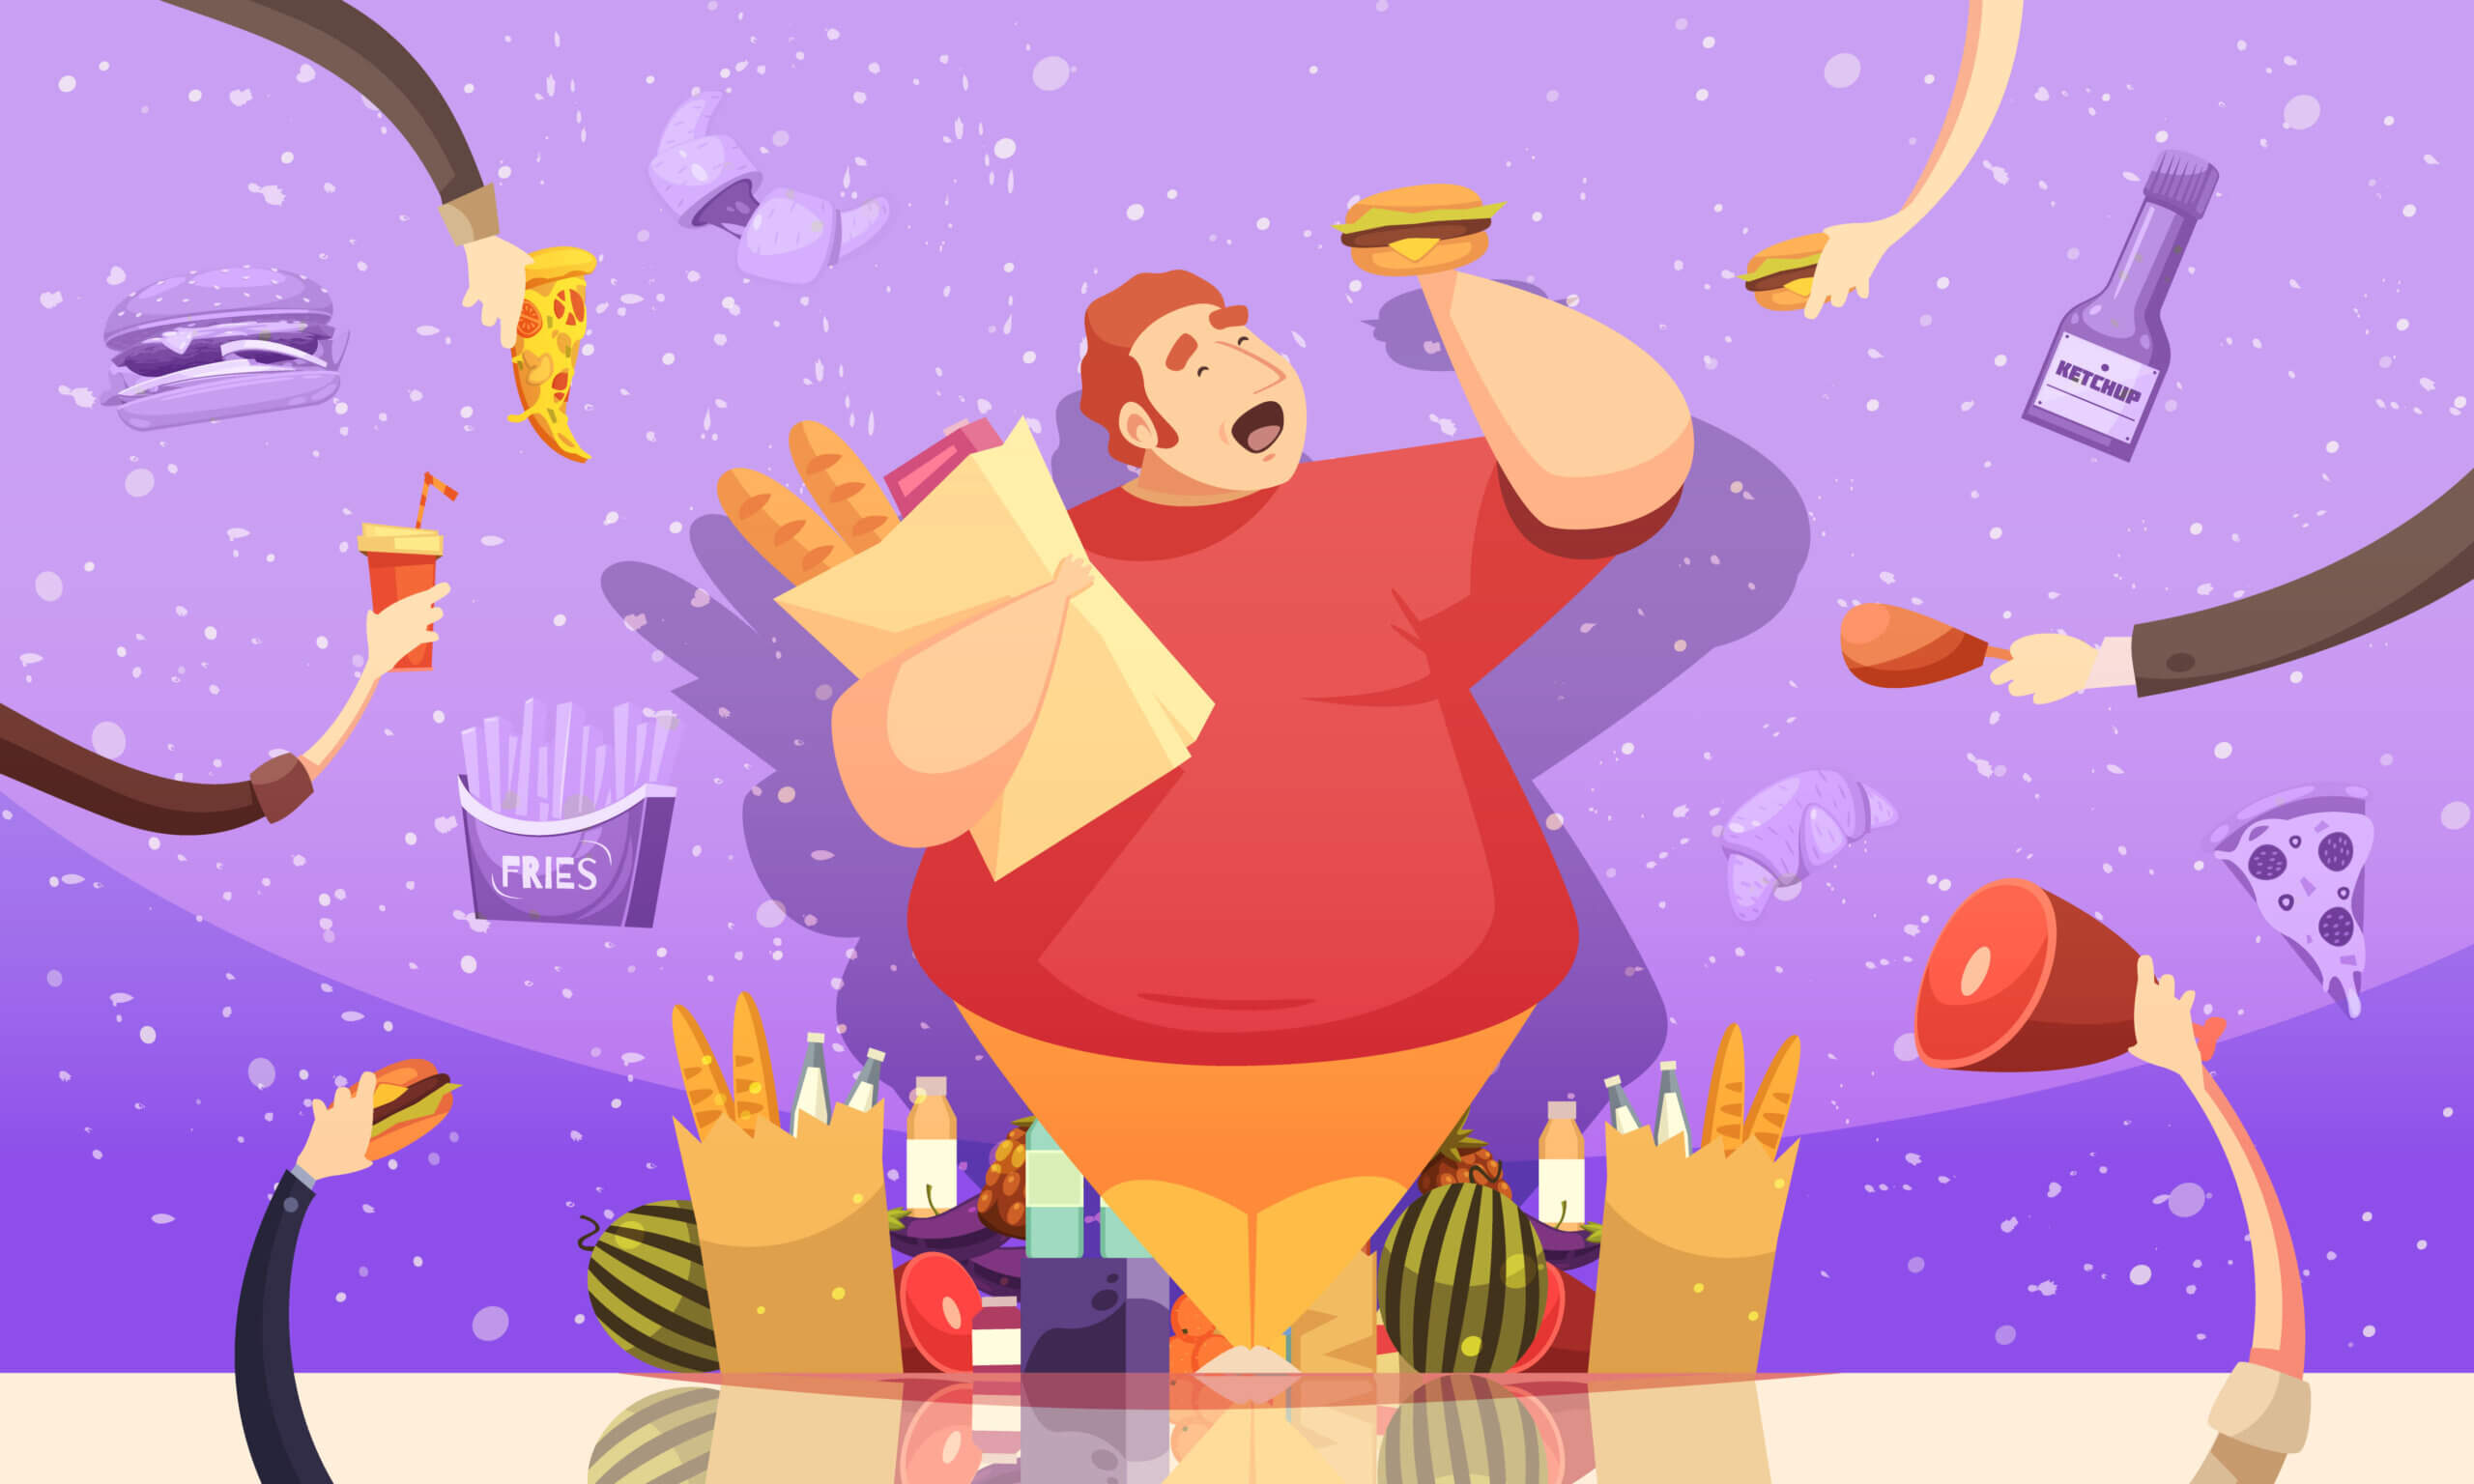 Gluttony leading to obesity cartoon poster with fat man holding hamburger and package of baked goods vector illustration